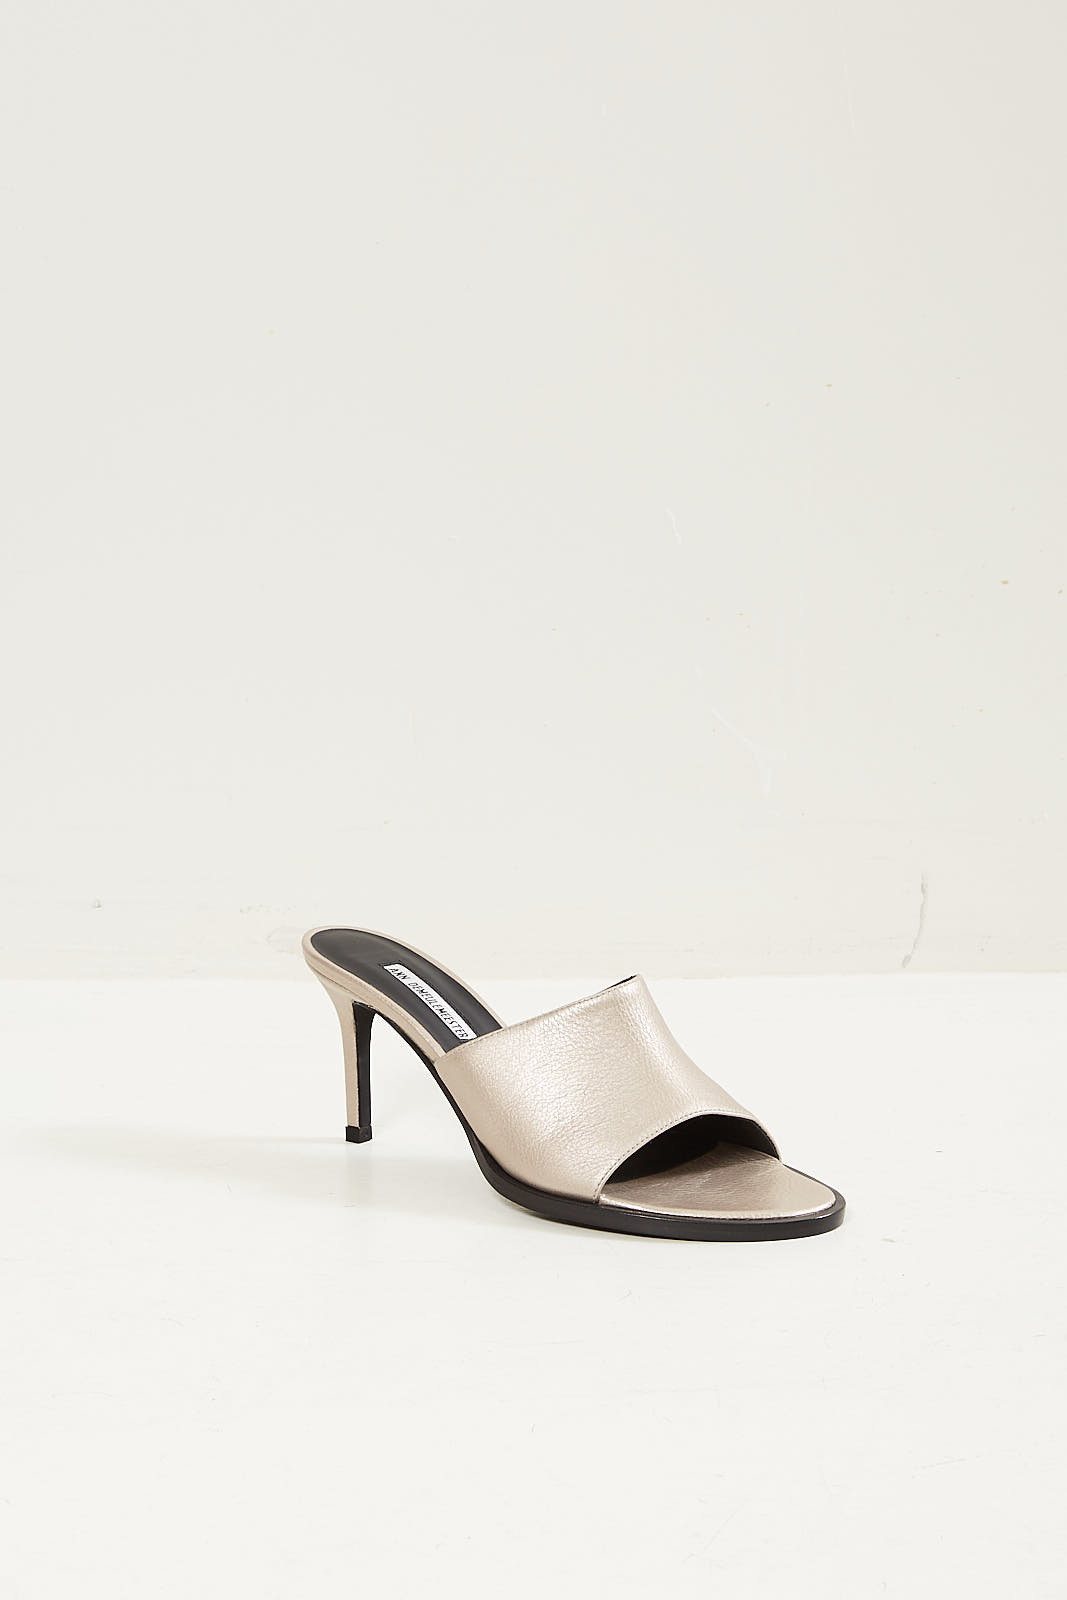 Ann Demeulemeester 100% leather sandals